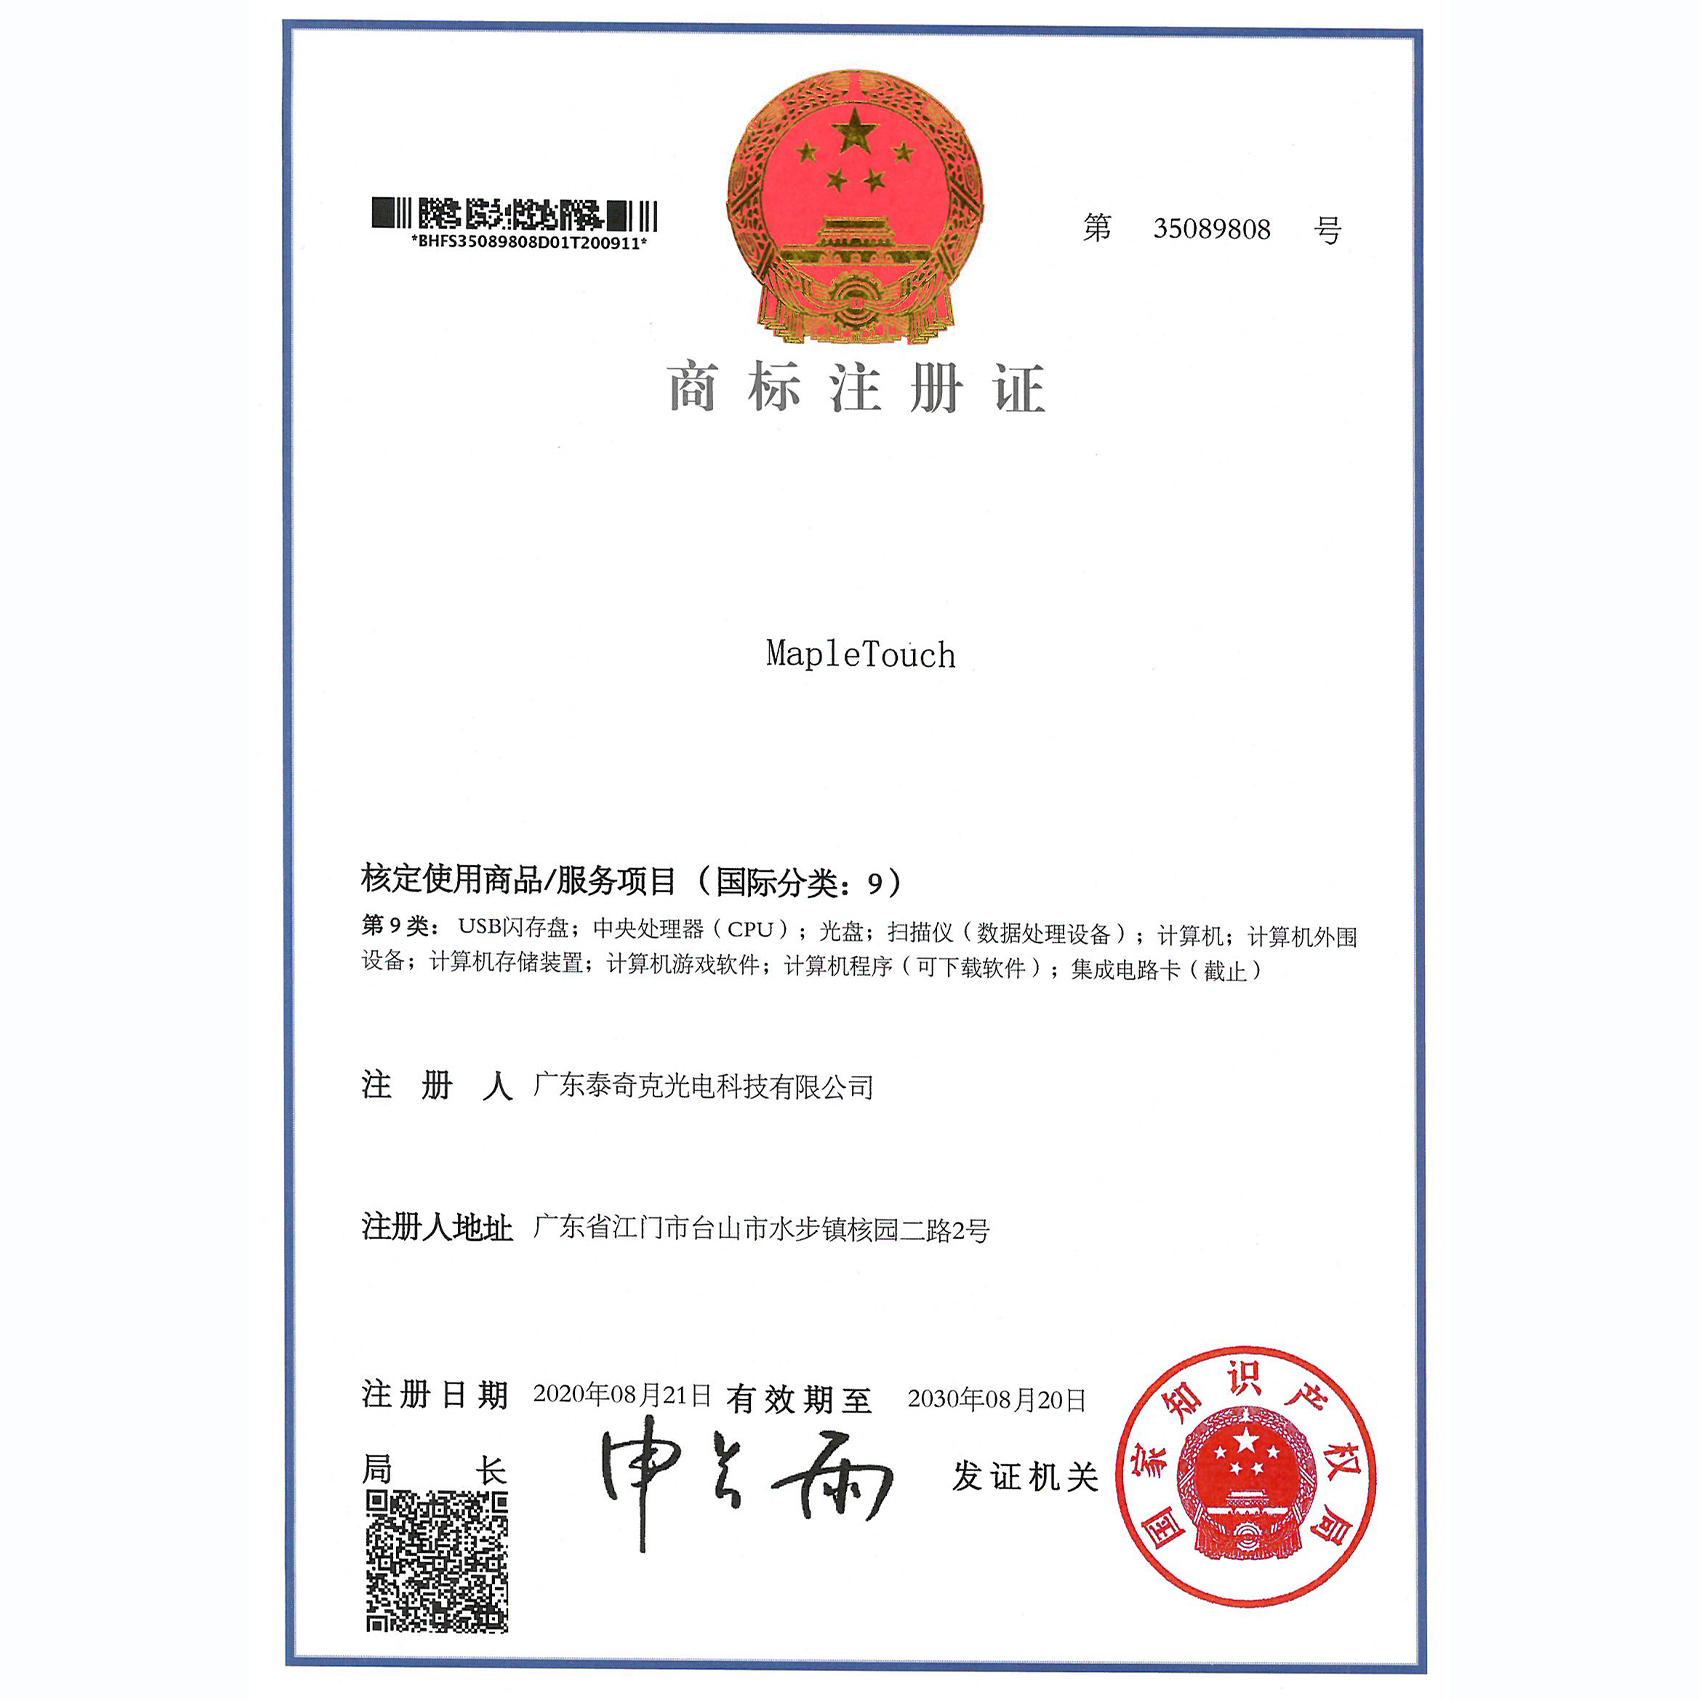 MapleTouch牌号注册